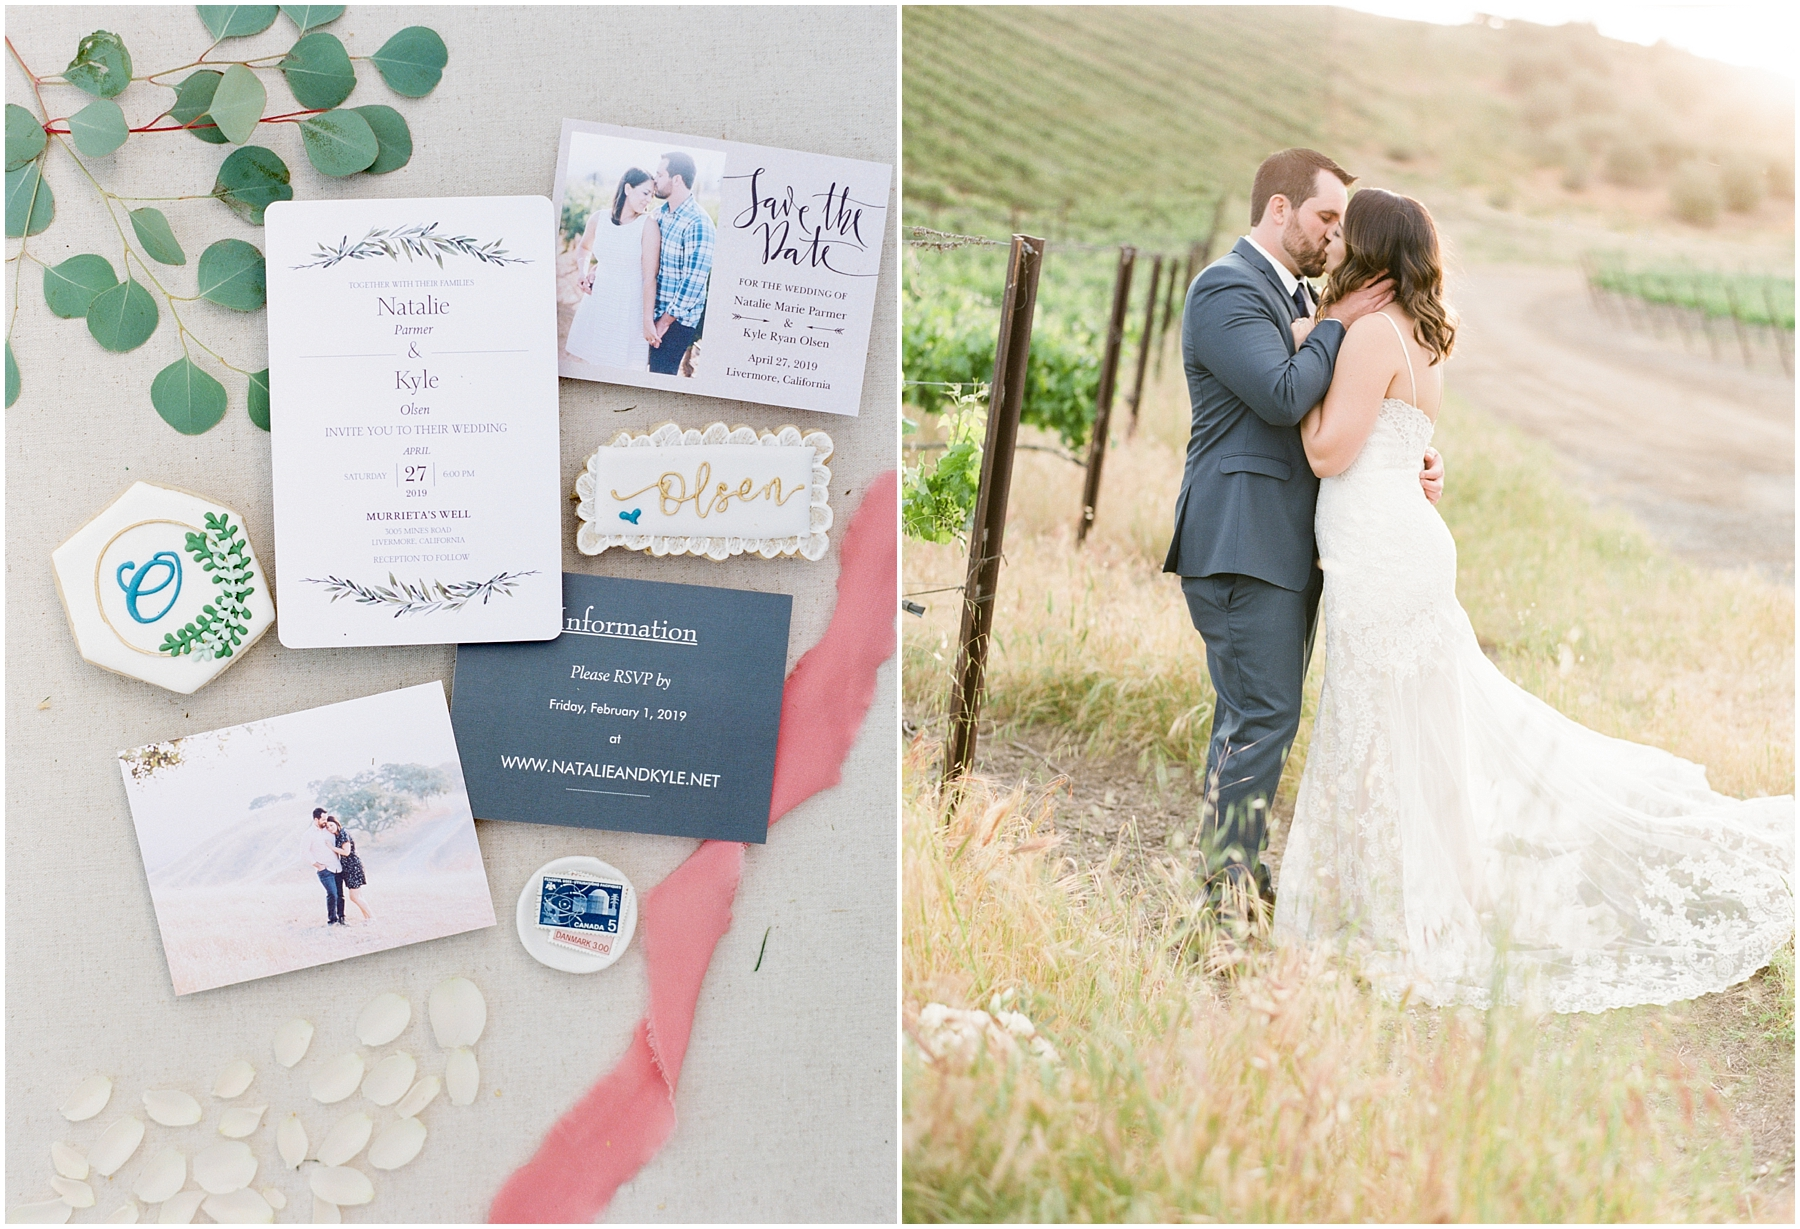 Muriettas-well-wedding-livemore-california-kristine-herman-photography-1-14.jpg